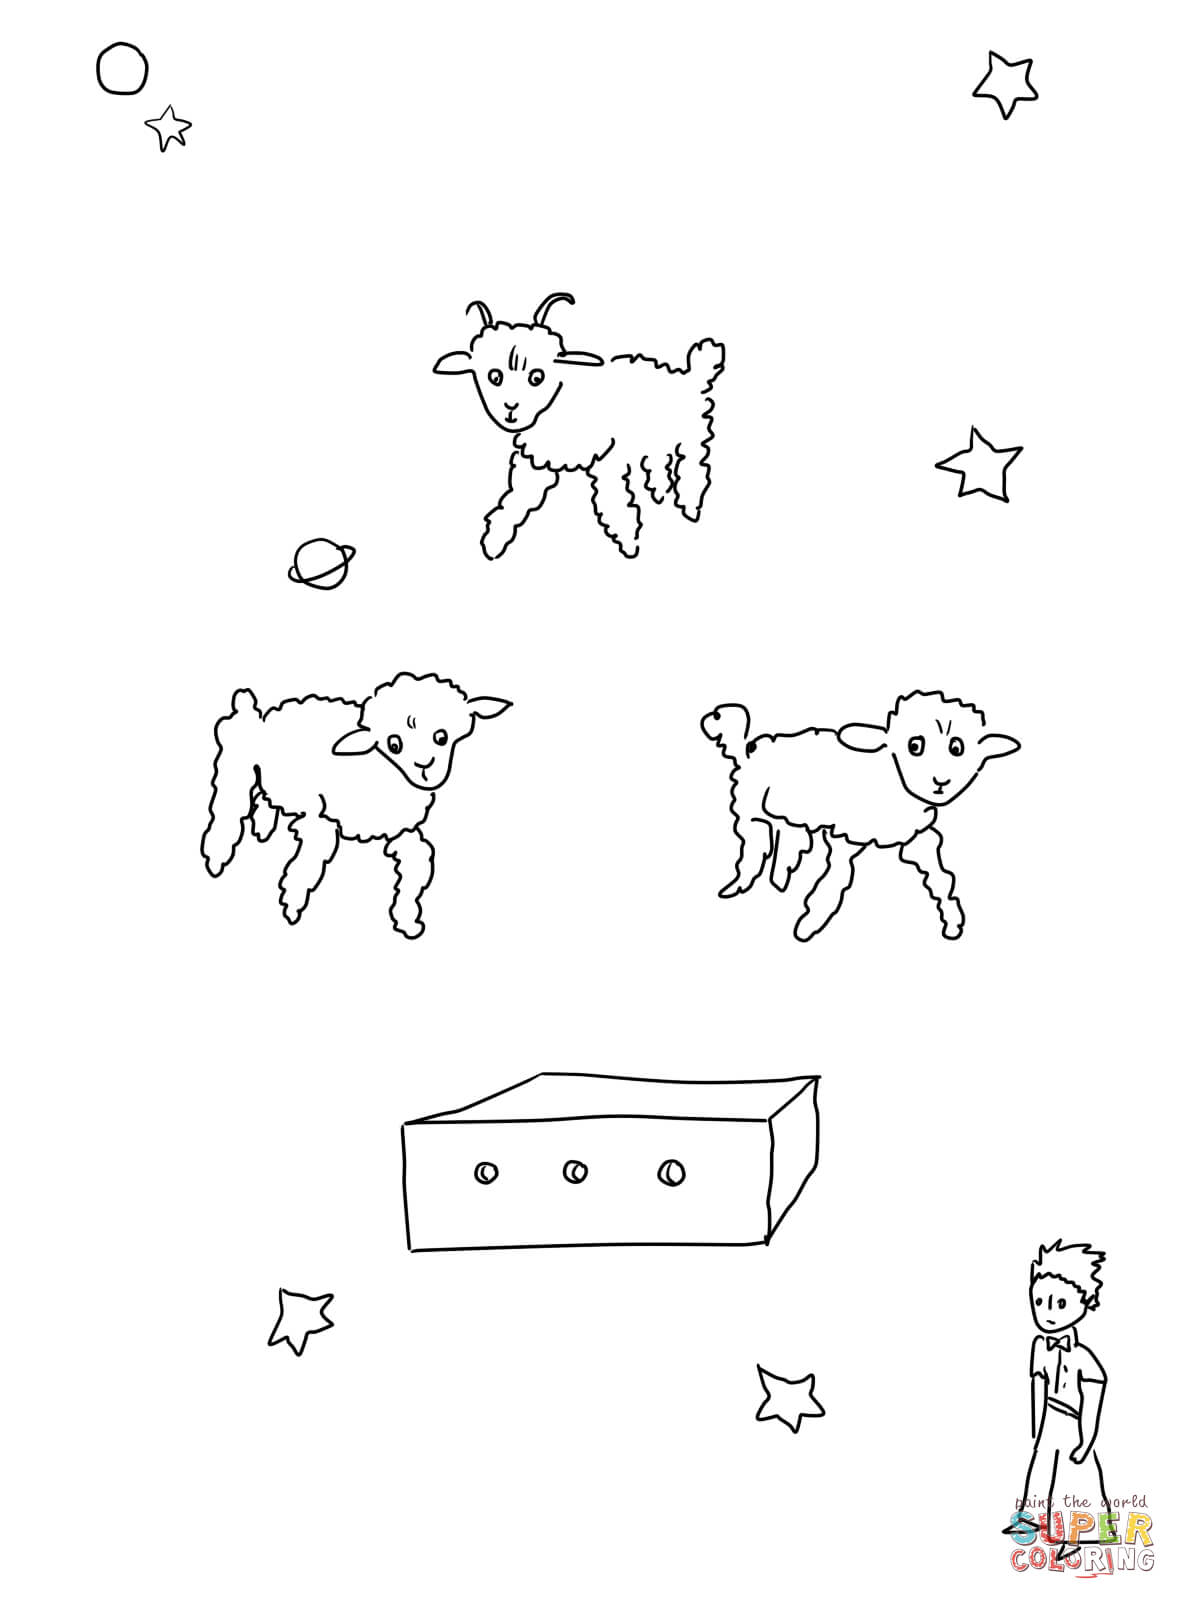 Draw Me A Sheep Coloring Page